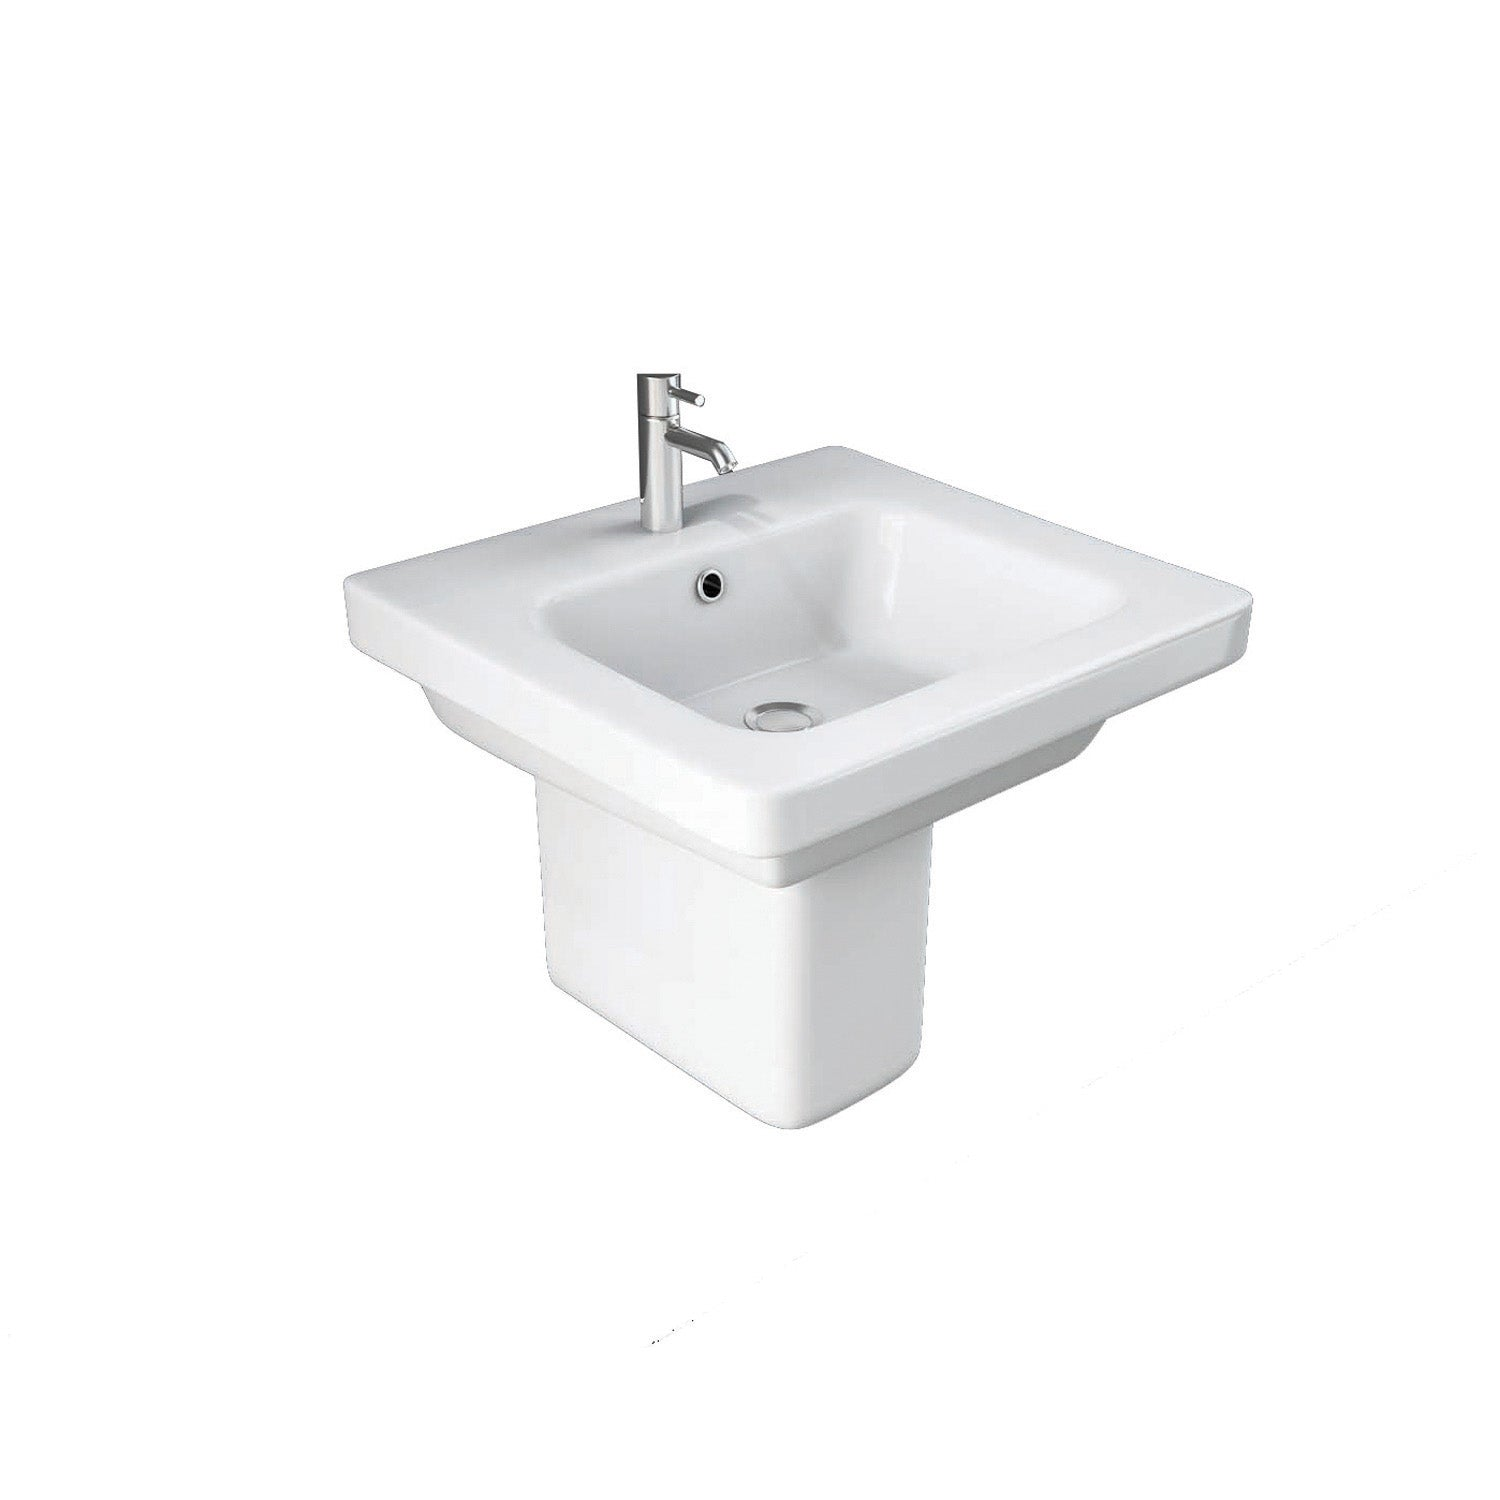 650mm Vesta Wall Hung Basin on a white background